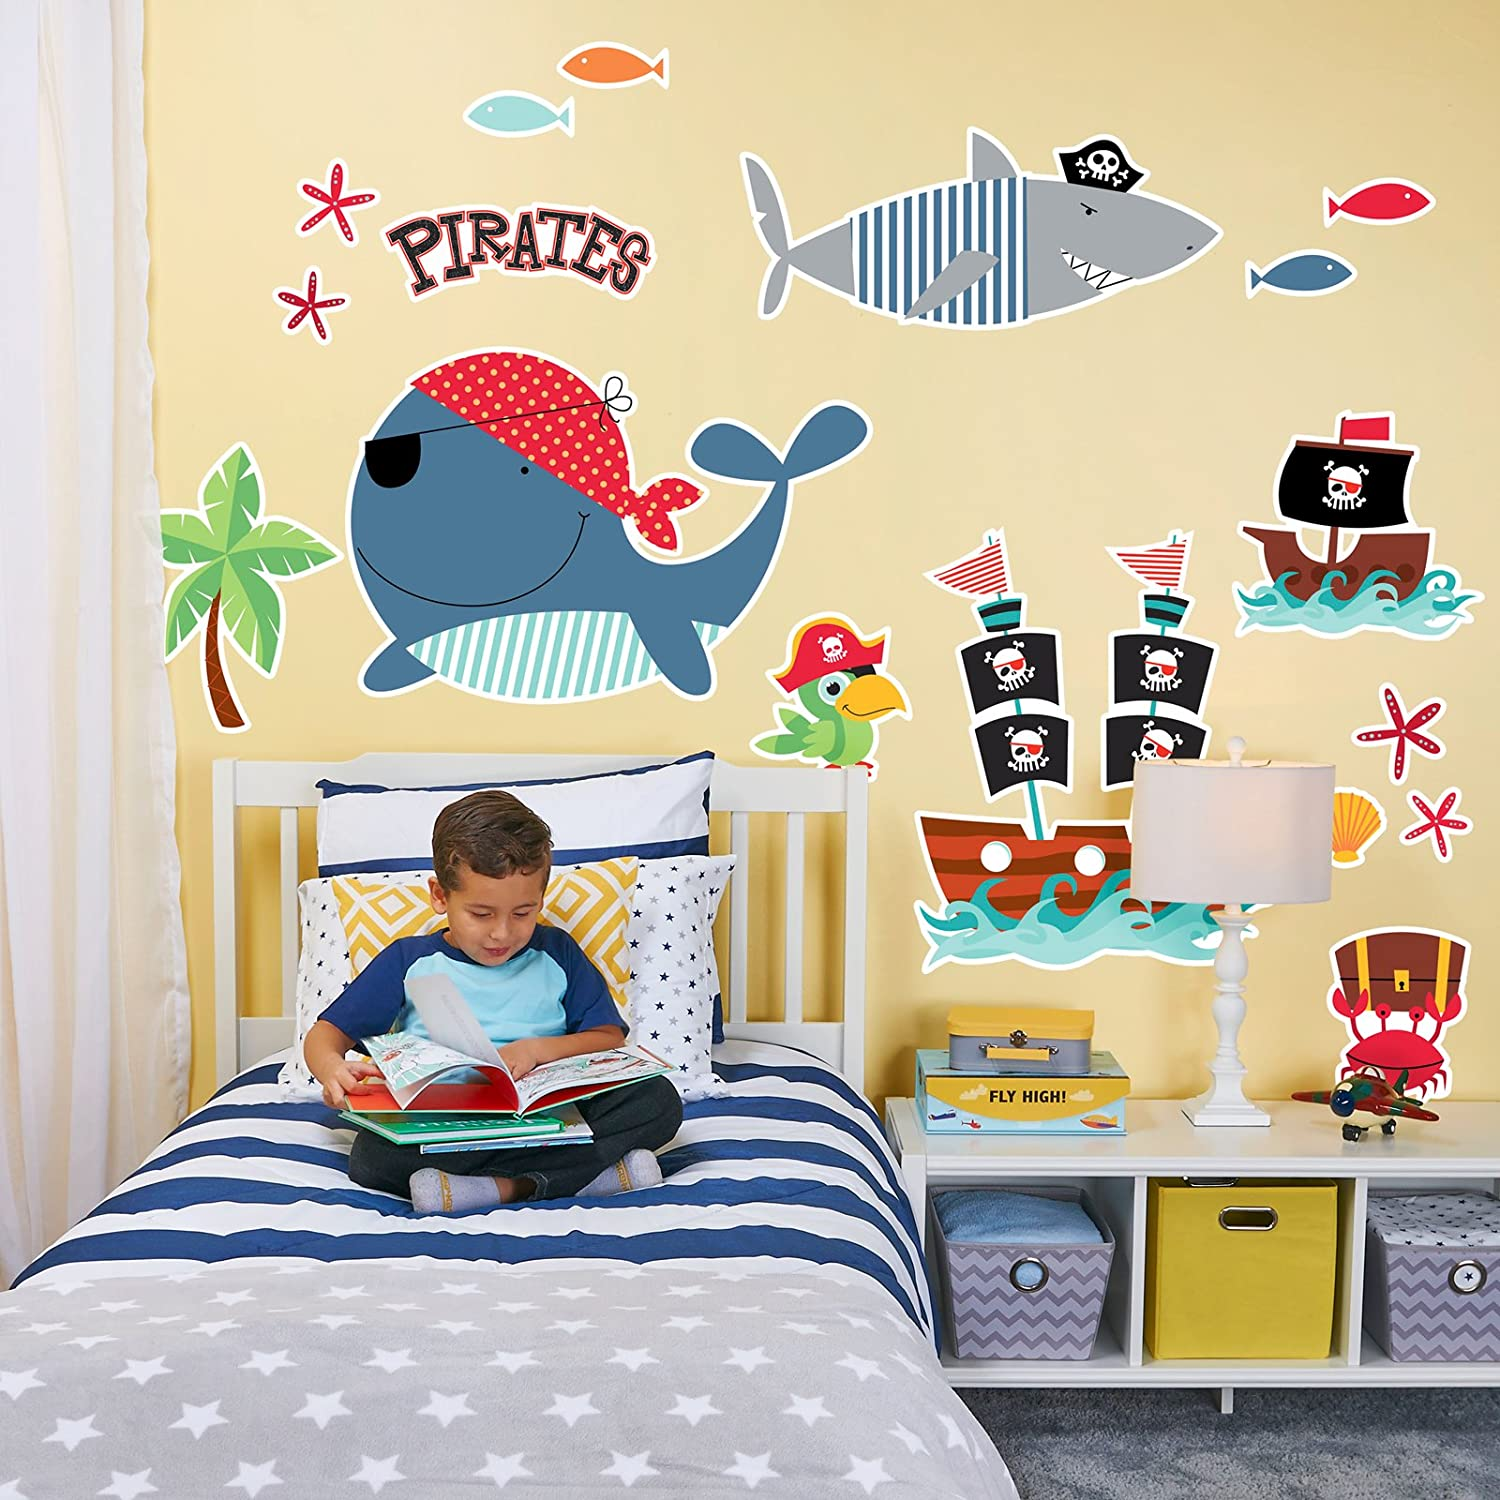 Amazon.com: Pirate Whale Shark Room Decorations Vinyl Wall Graphic ...